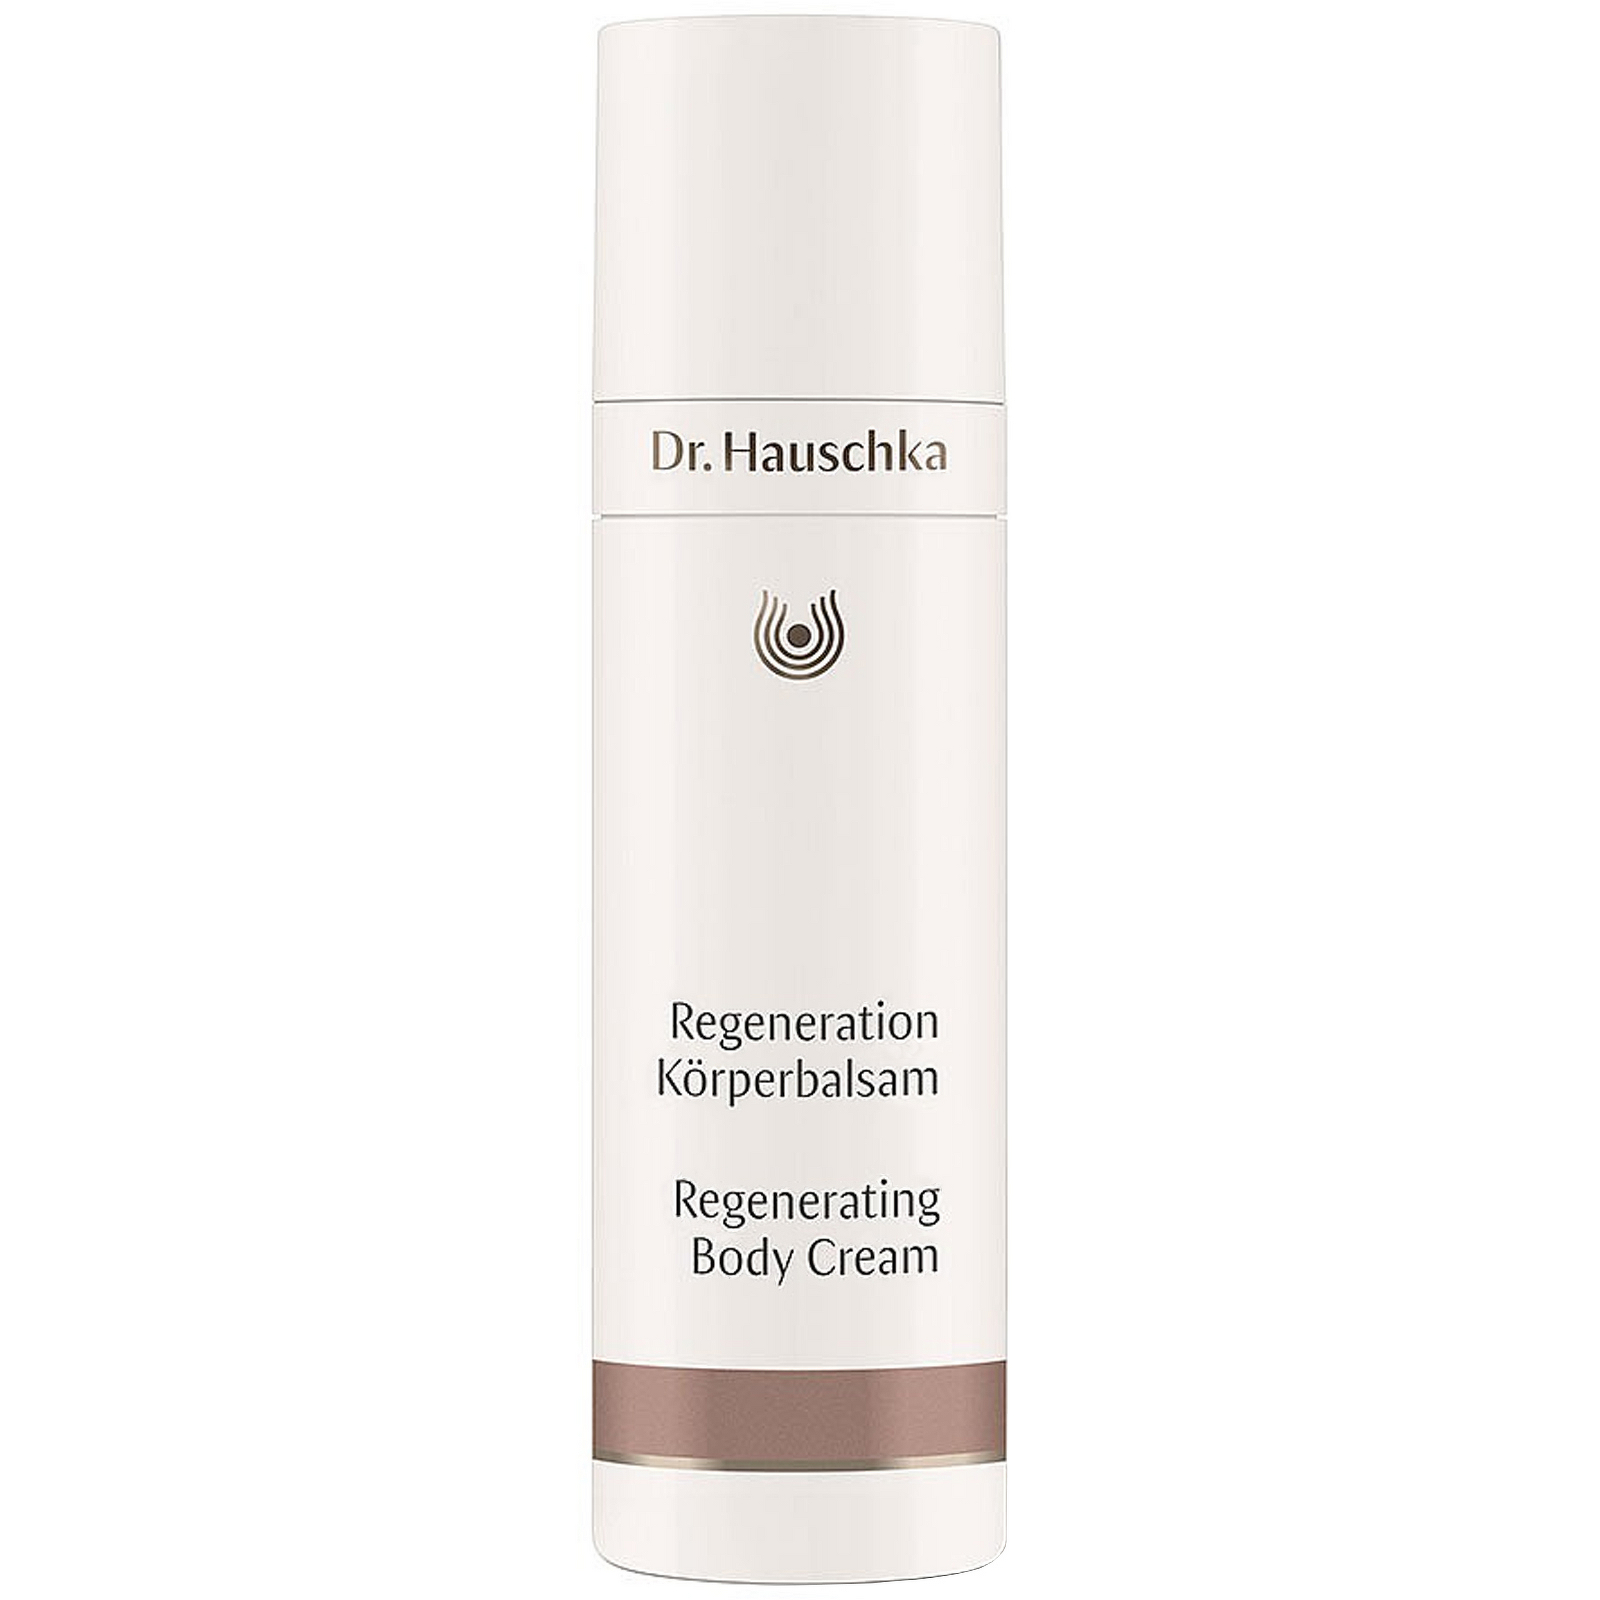 Dr. Hauschka Body Care Regenerating Body Cream 150ml